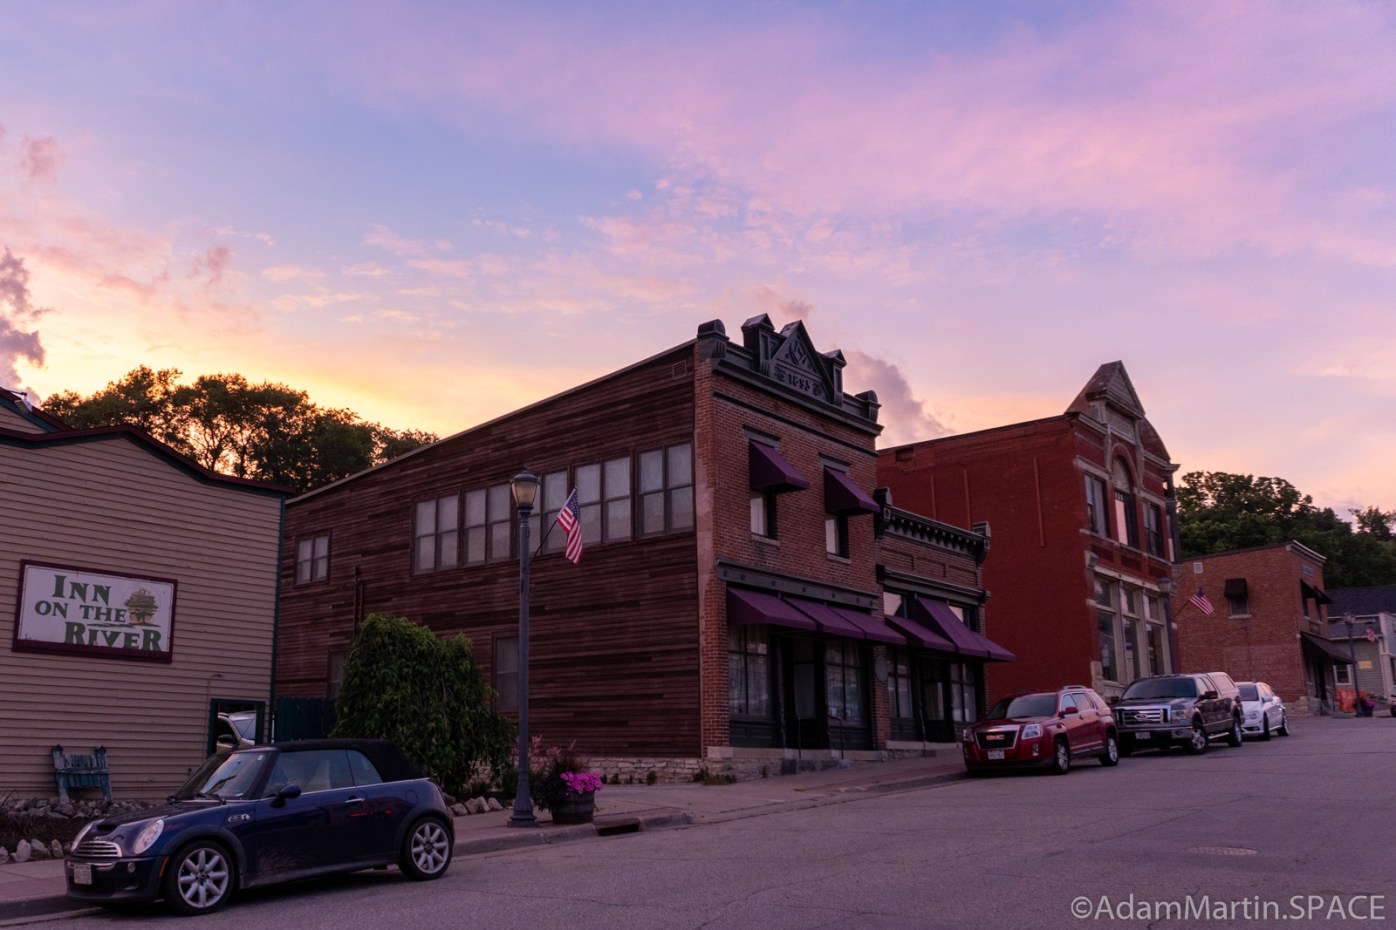 Trempeauleau, WI - Sunset over Main Street buildings